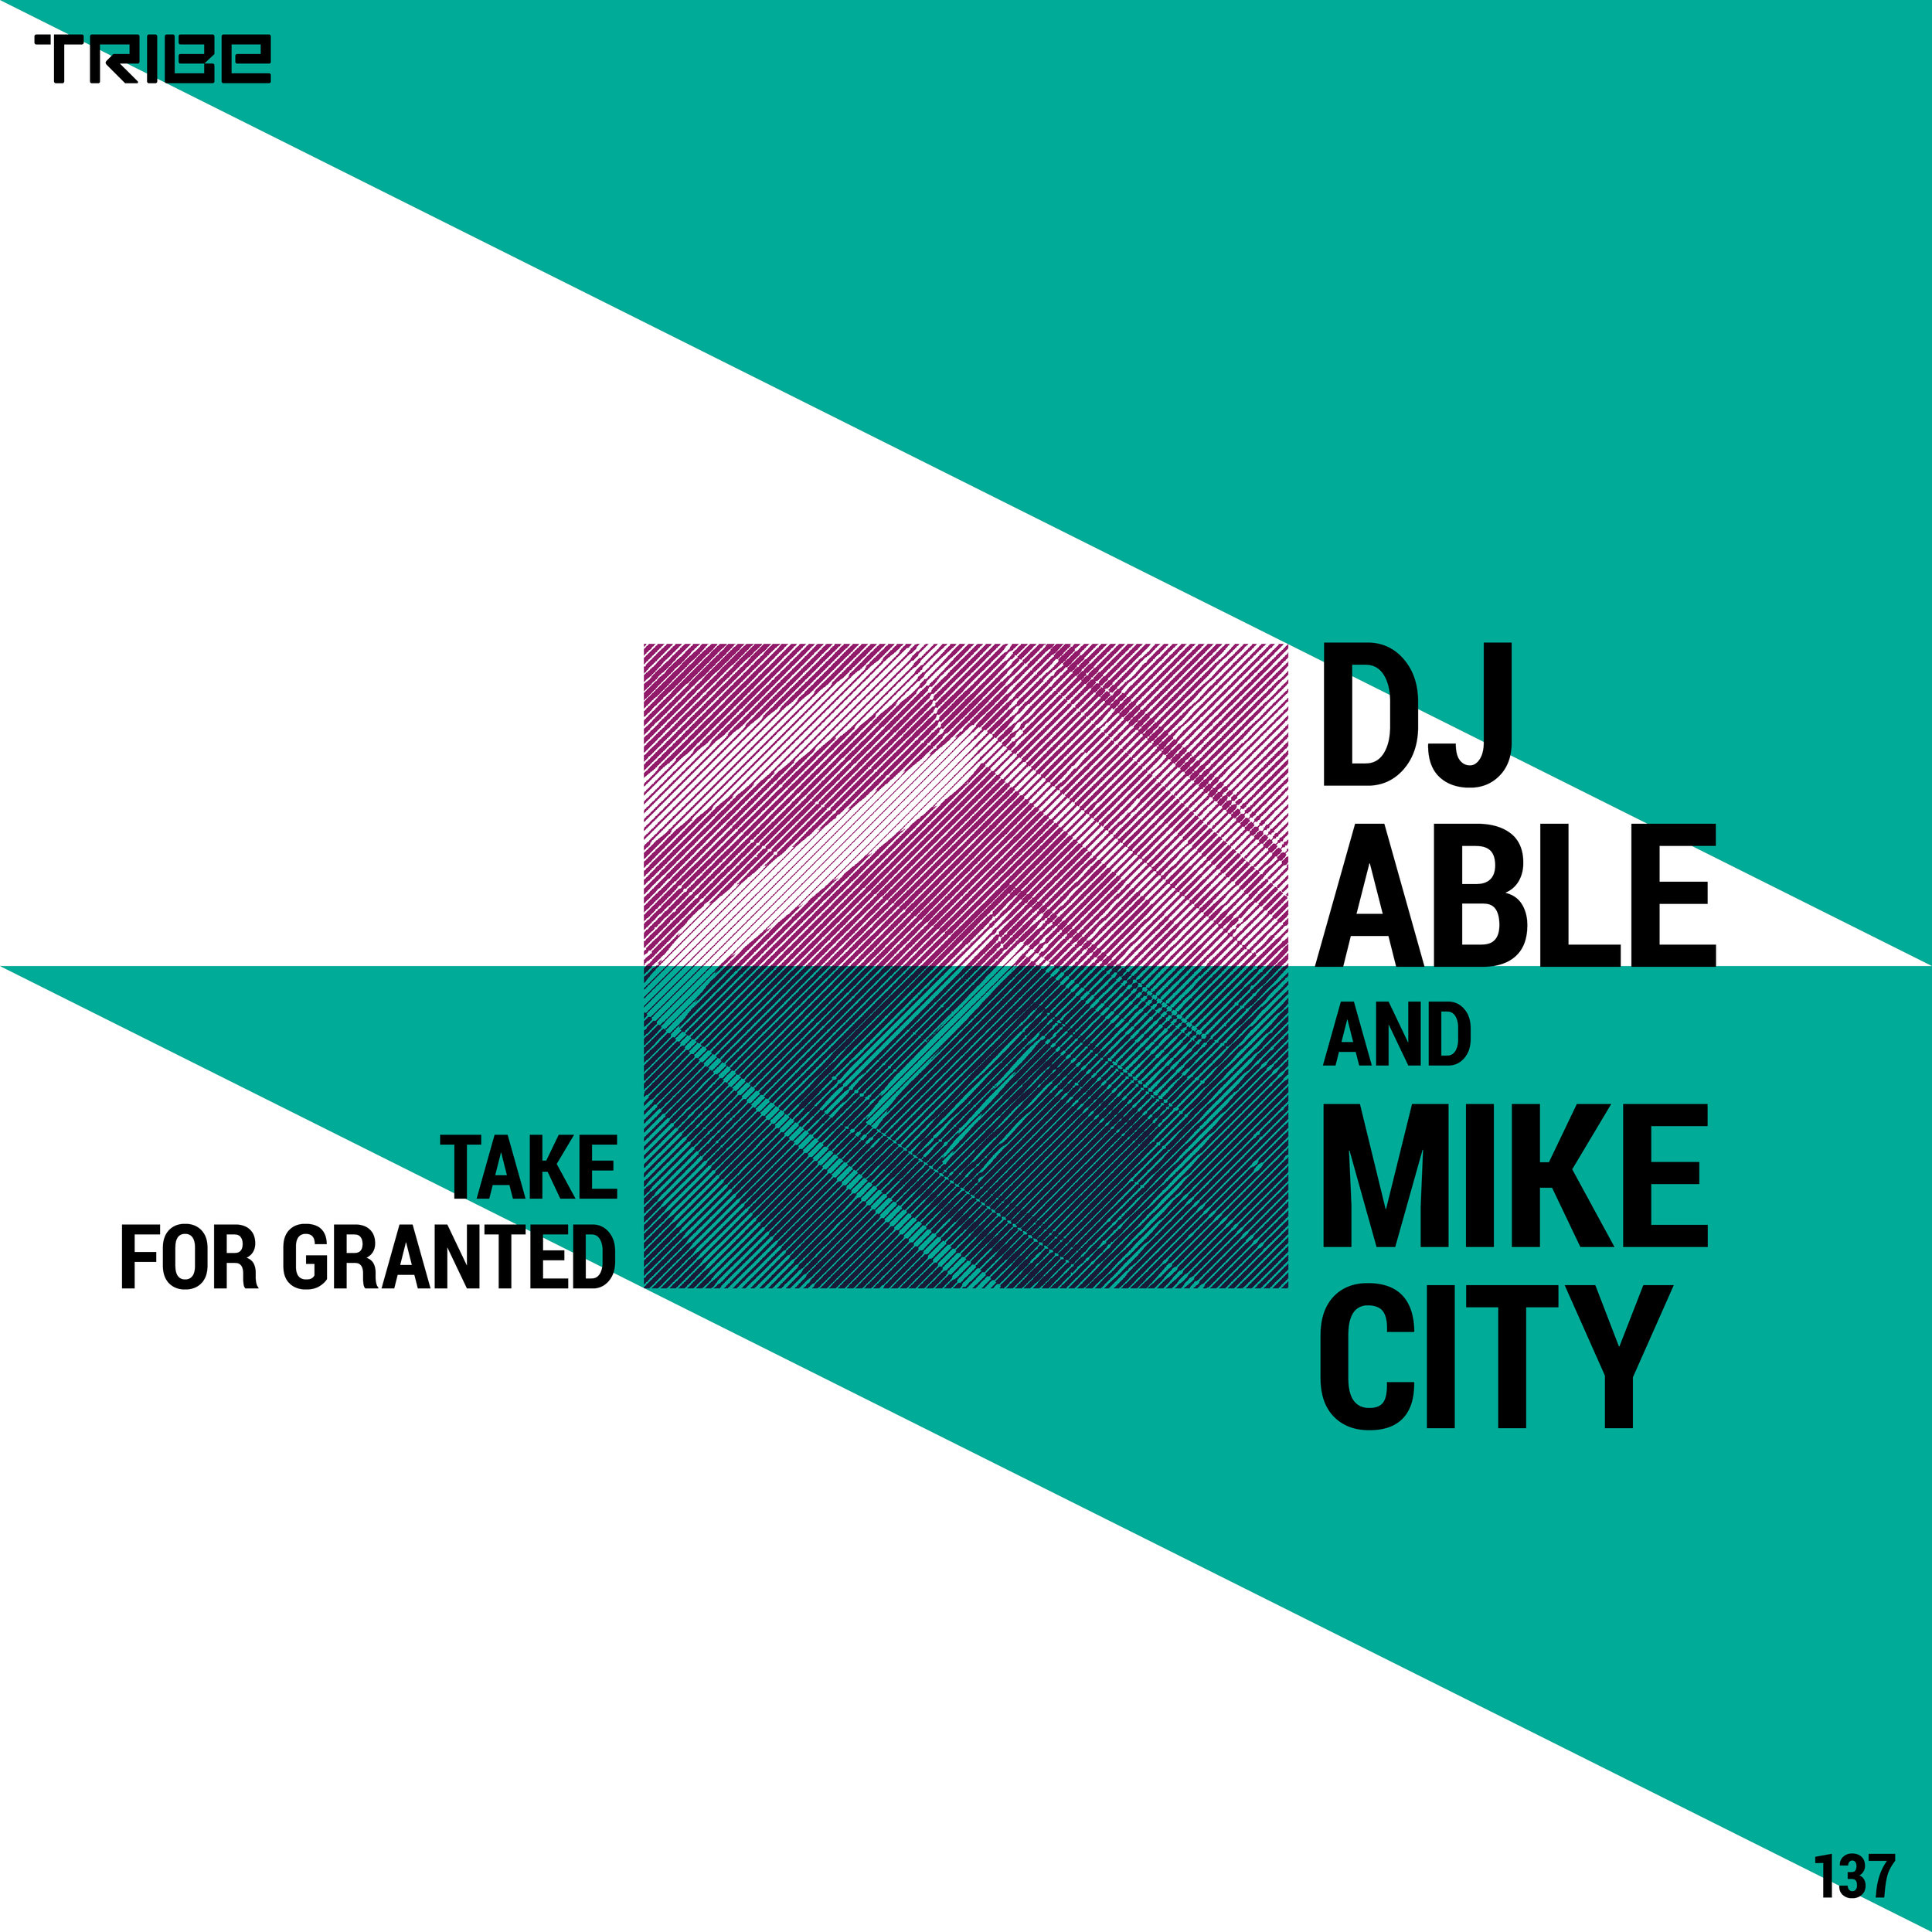 DJ ABLE AND MIKE CITY       TAKE FOR GRANTED